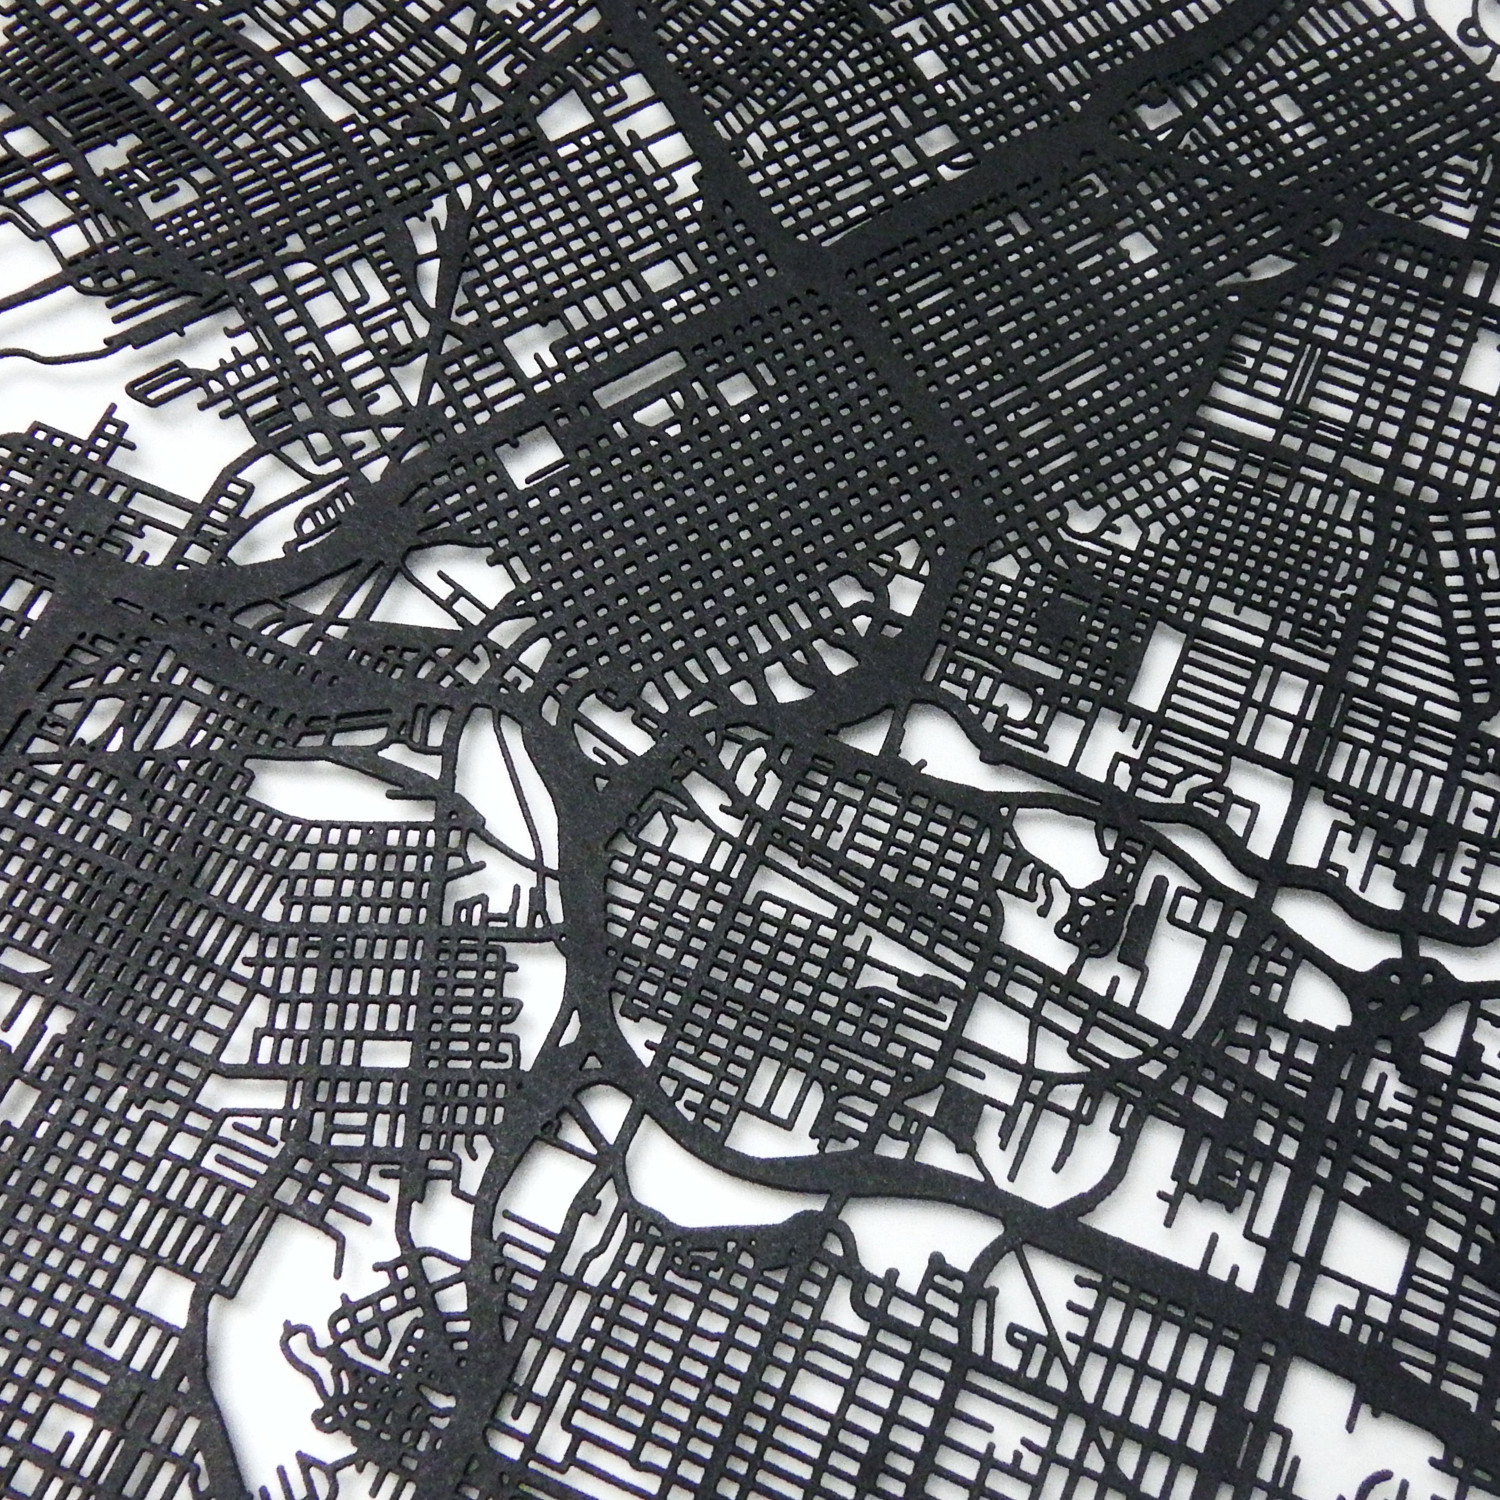 Houston Street Map Size 11x14 CarbonLight Touch of Modern